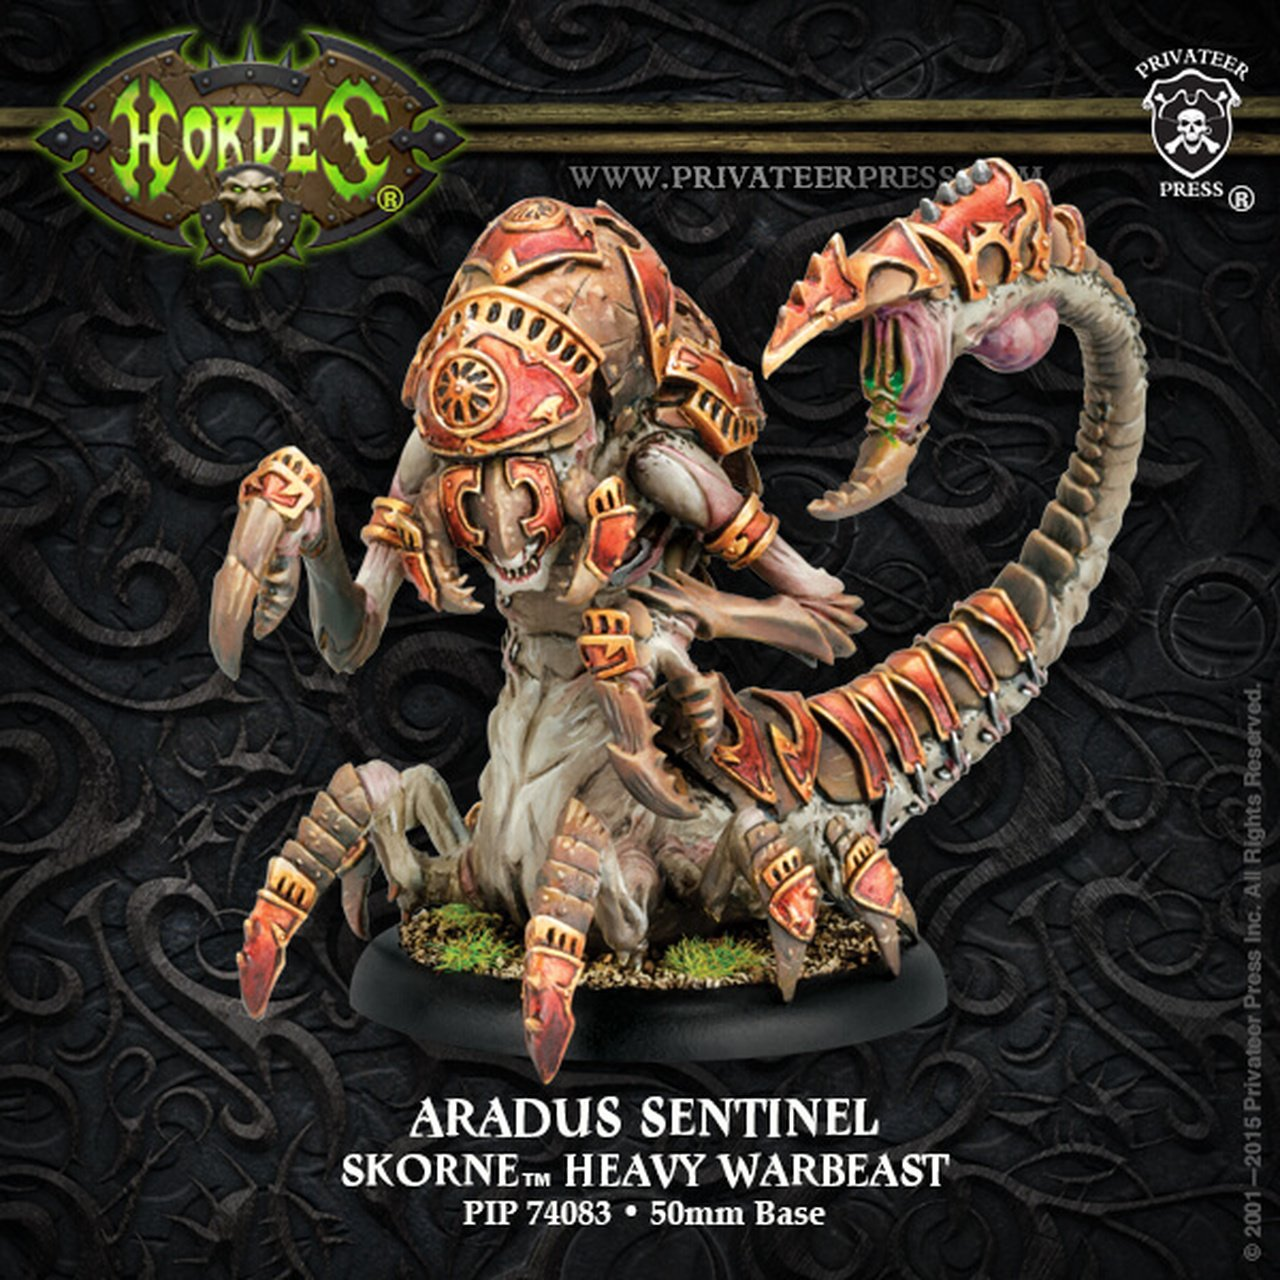 Skorne - Aradus Sentinel/Soldier Heavy Warbeast | All About Games